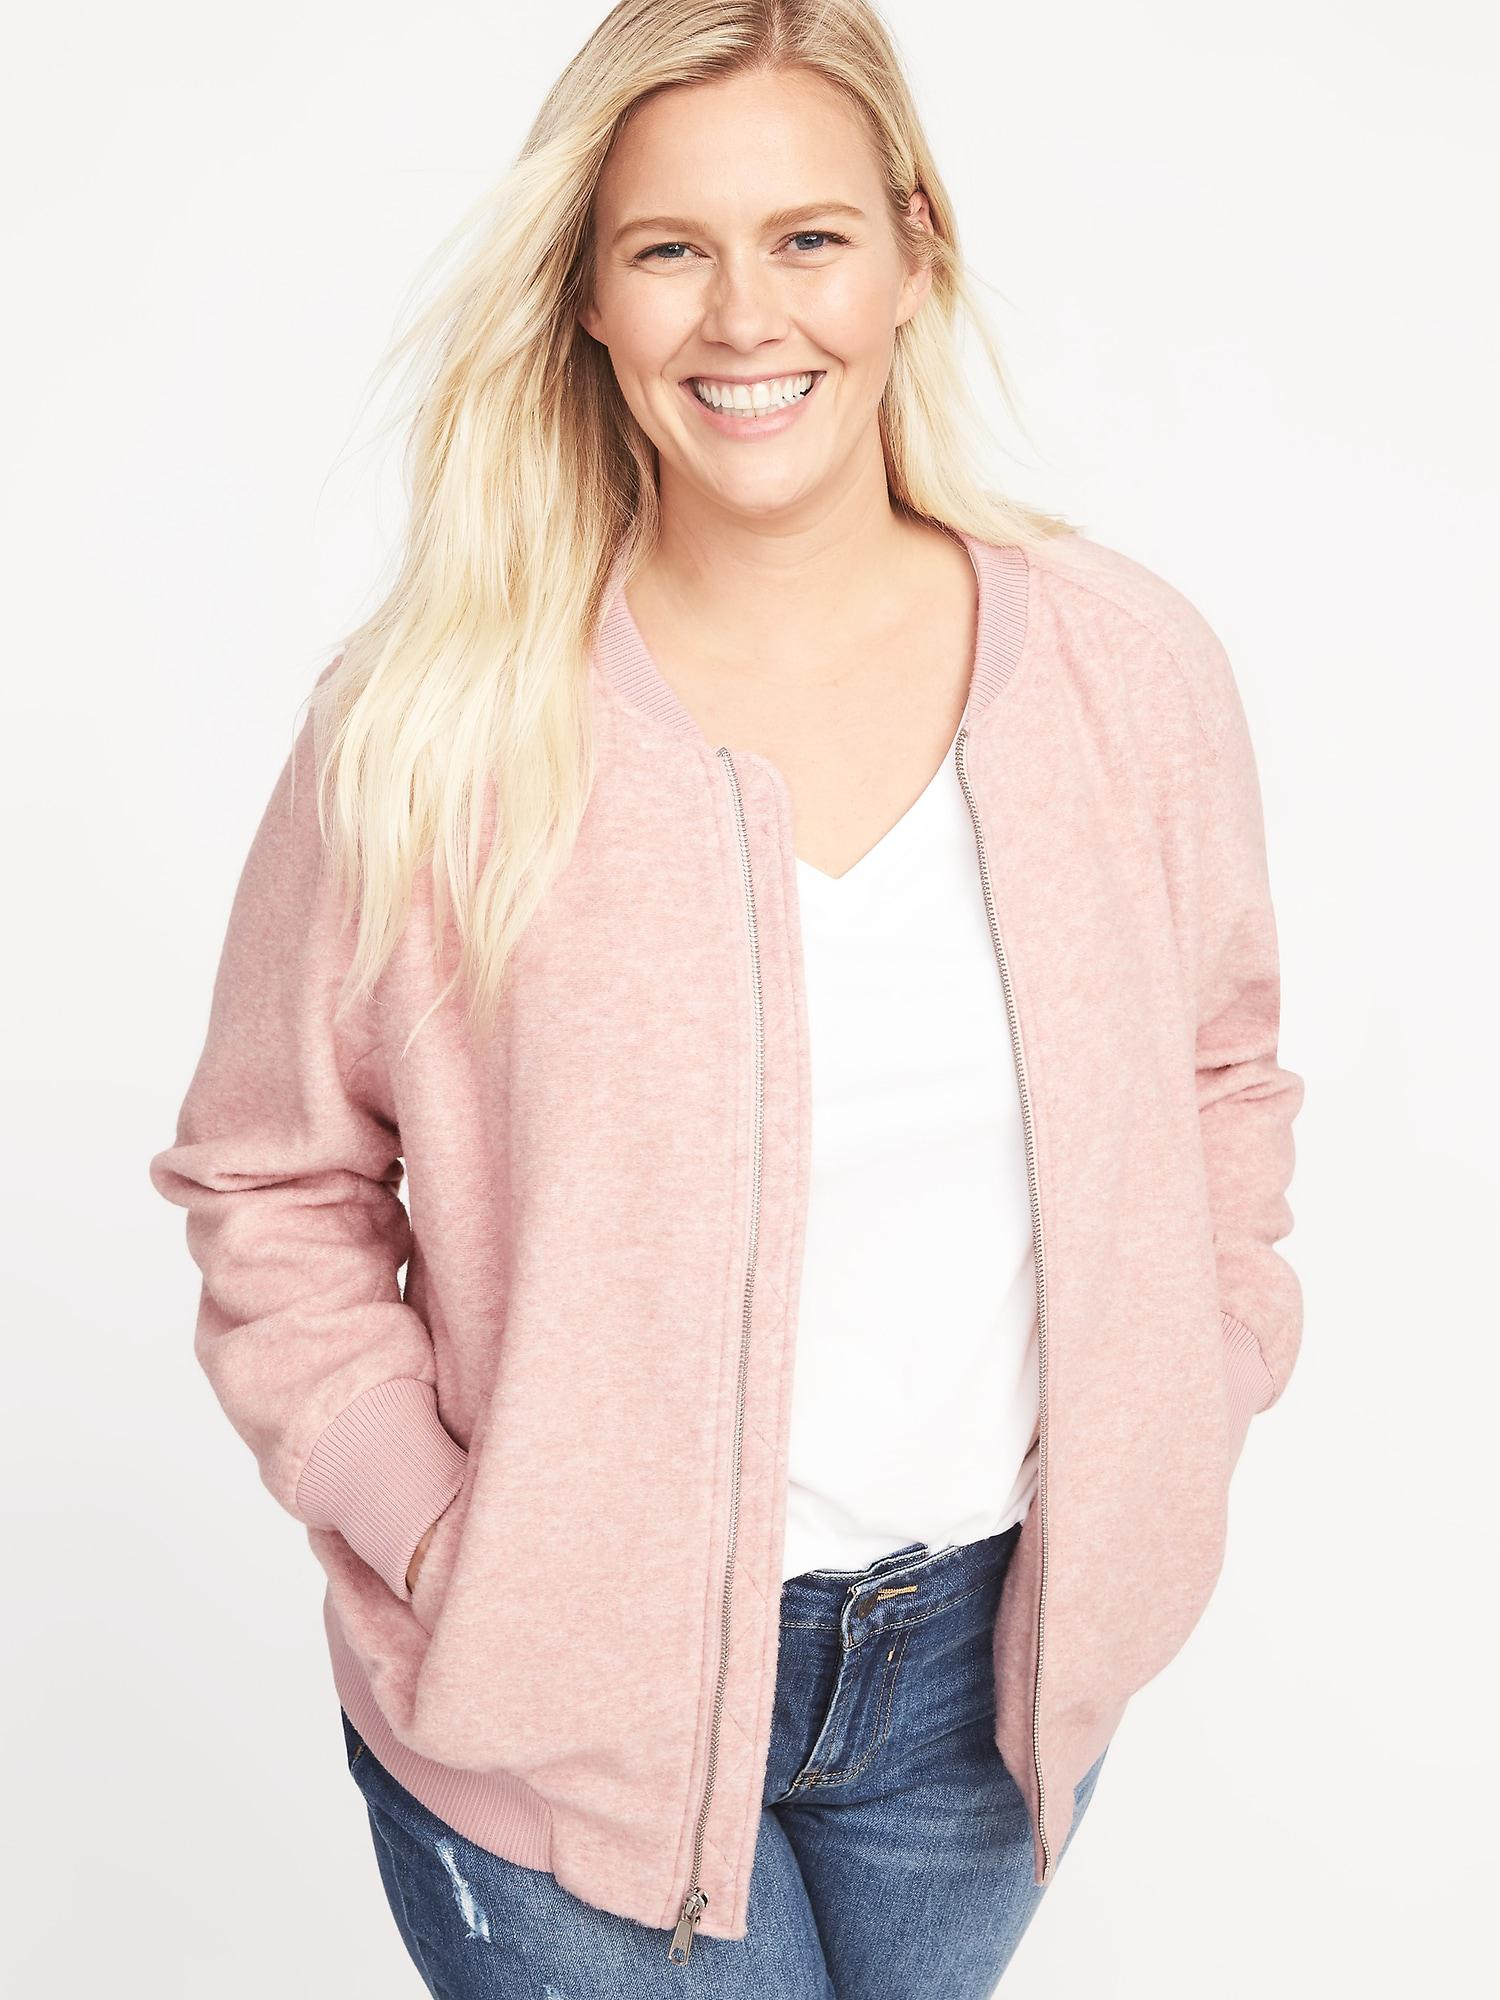 69d3c2bdcd7 Lyst - Old Navy Textured Jacquard Plus-size Bomber Jacket in Pink